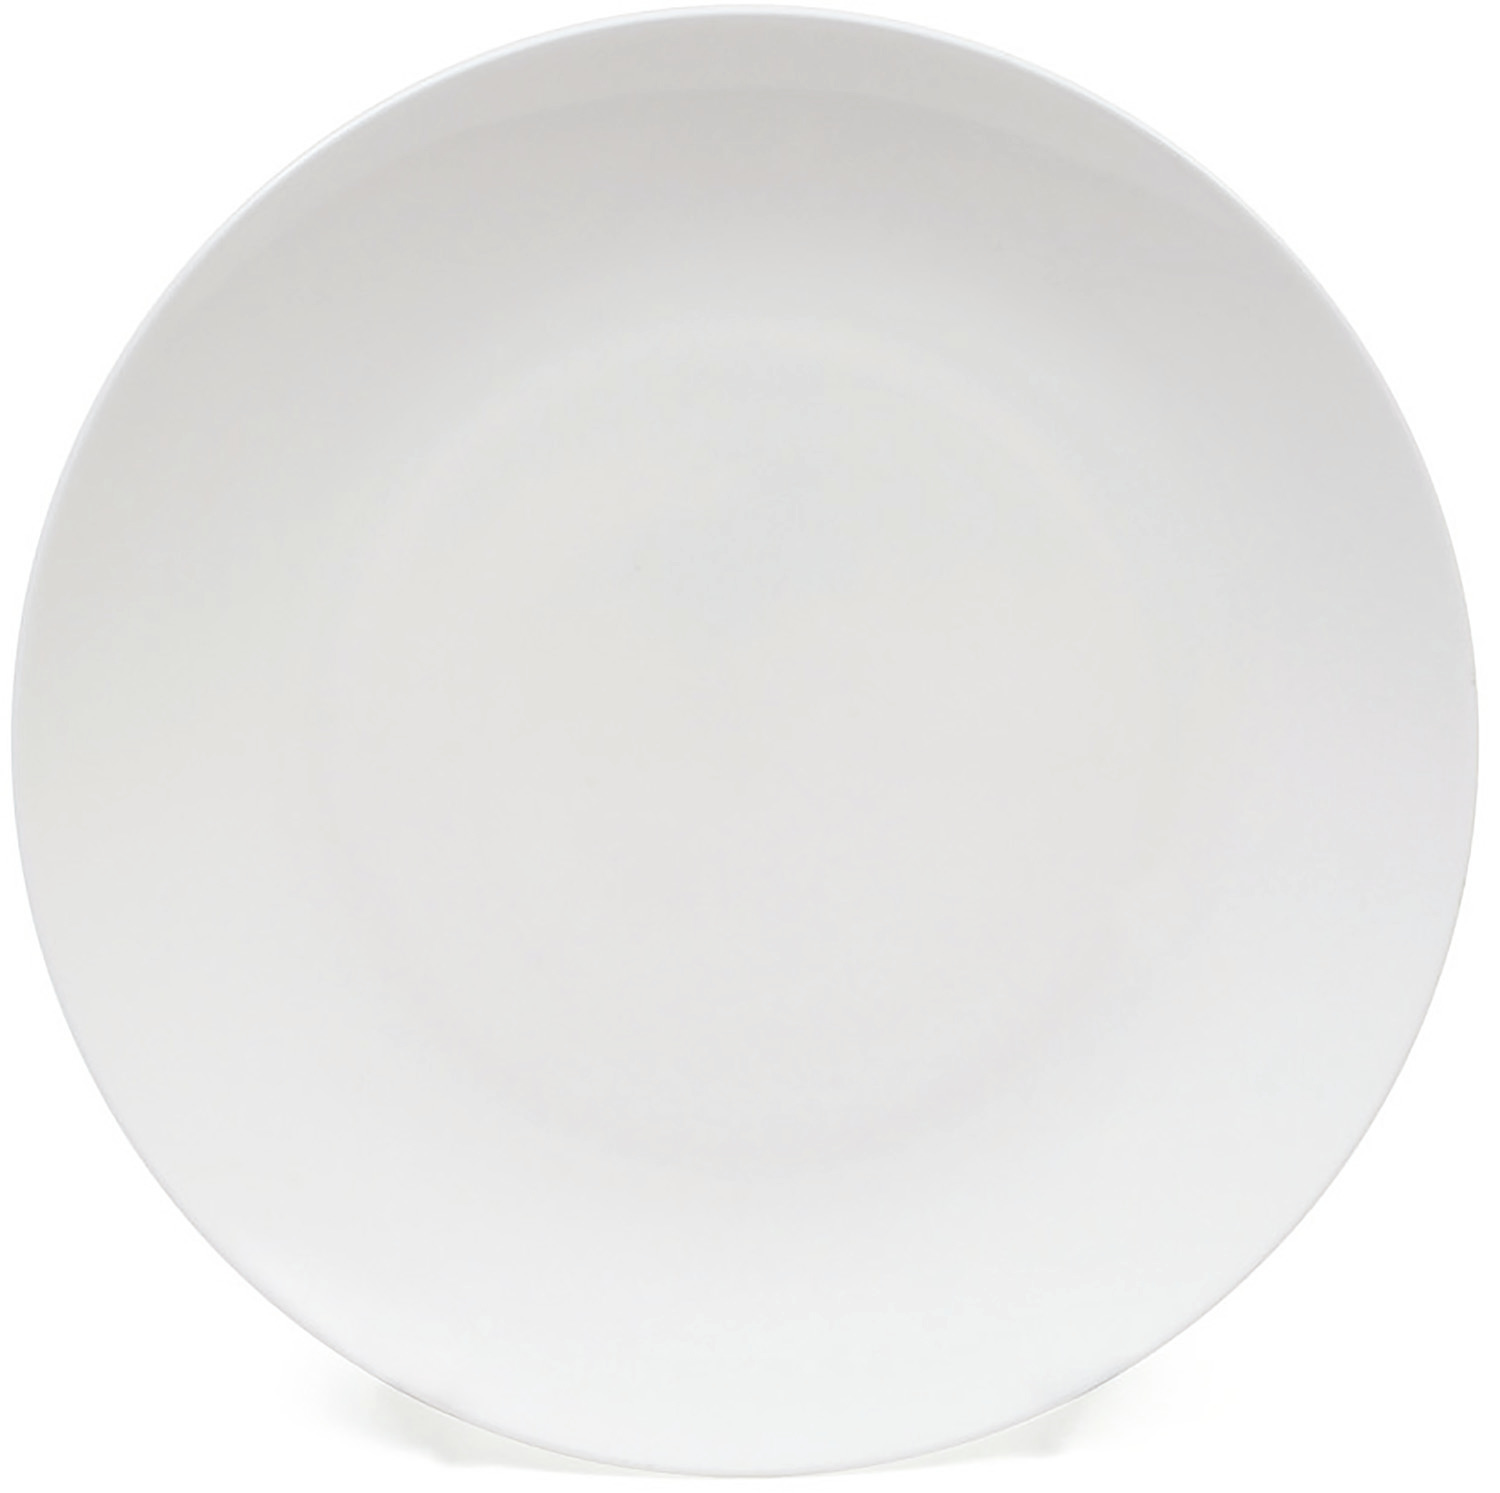 Maxwell & Williams Cashmere 23Cm Coupe Entree Plate